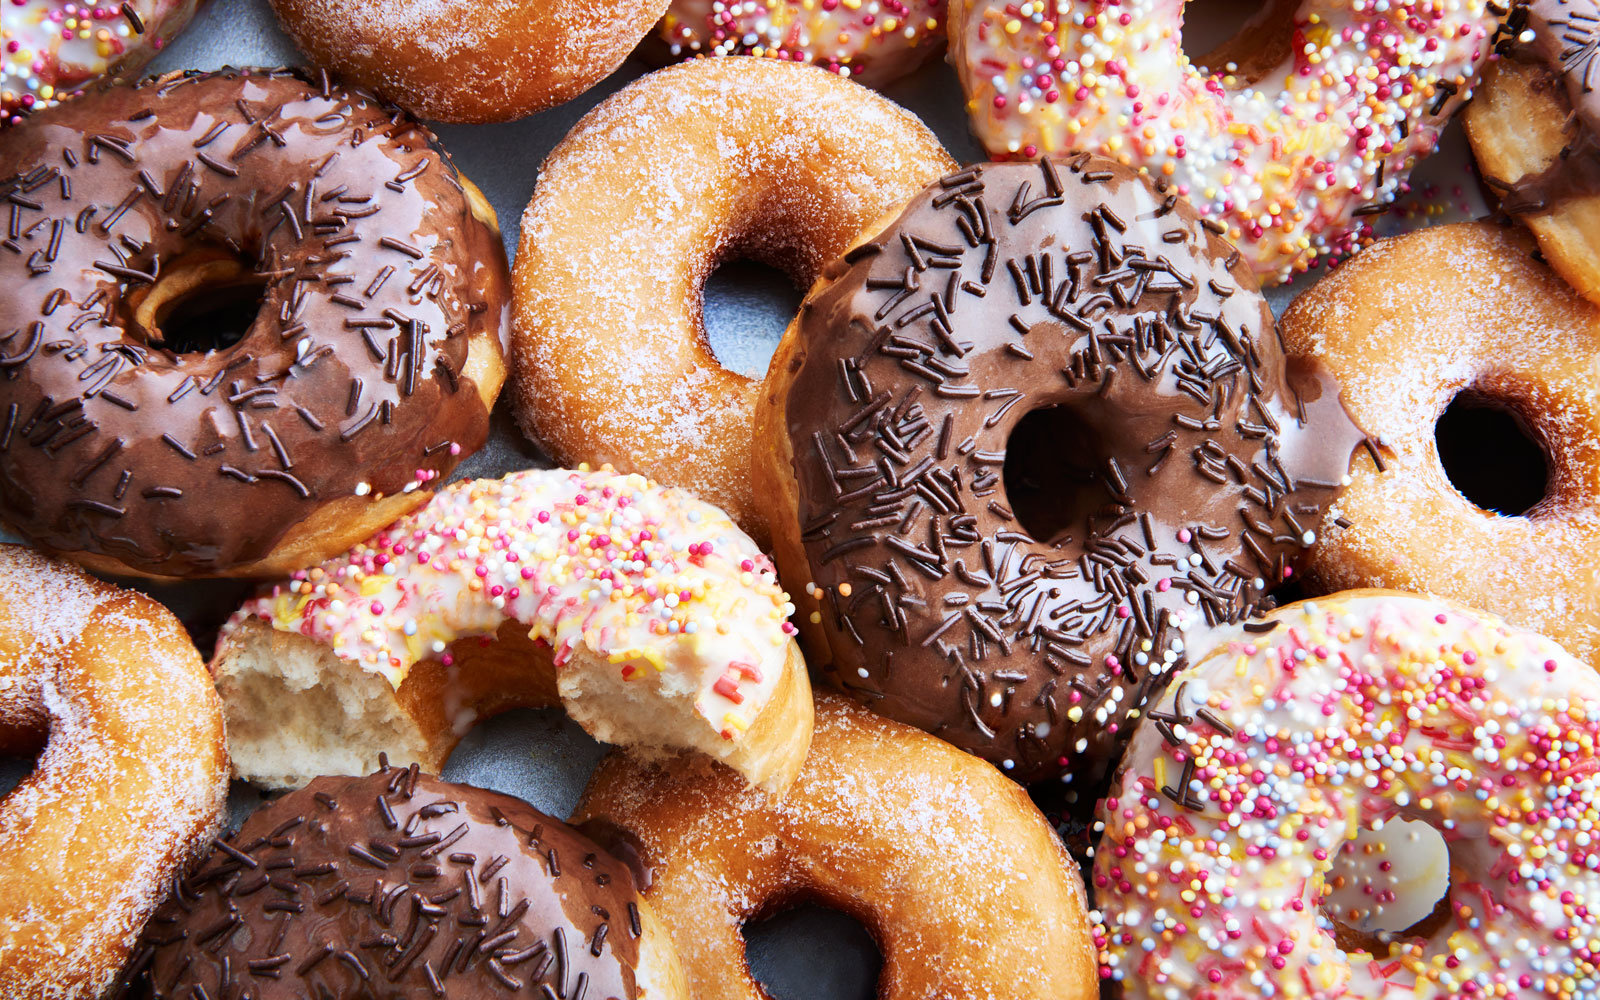 The Reason We Celebrate National Donut Day Can Be Traced